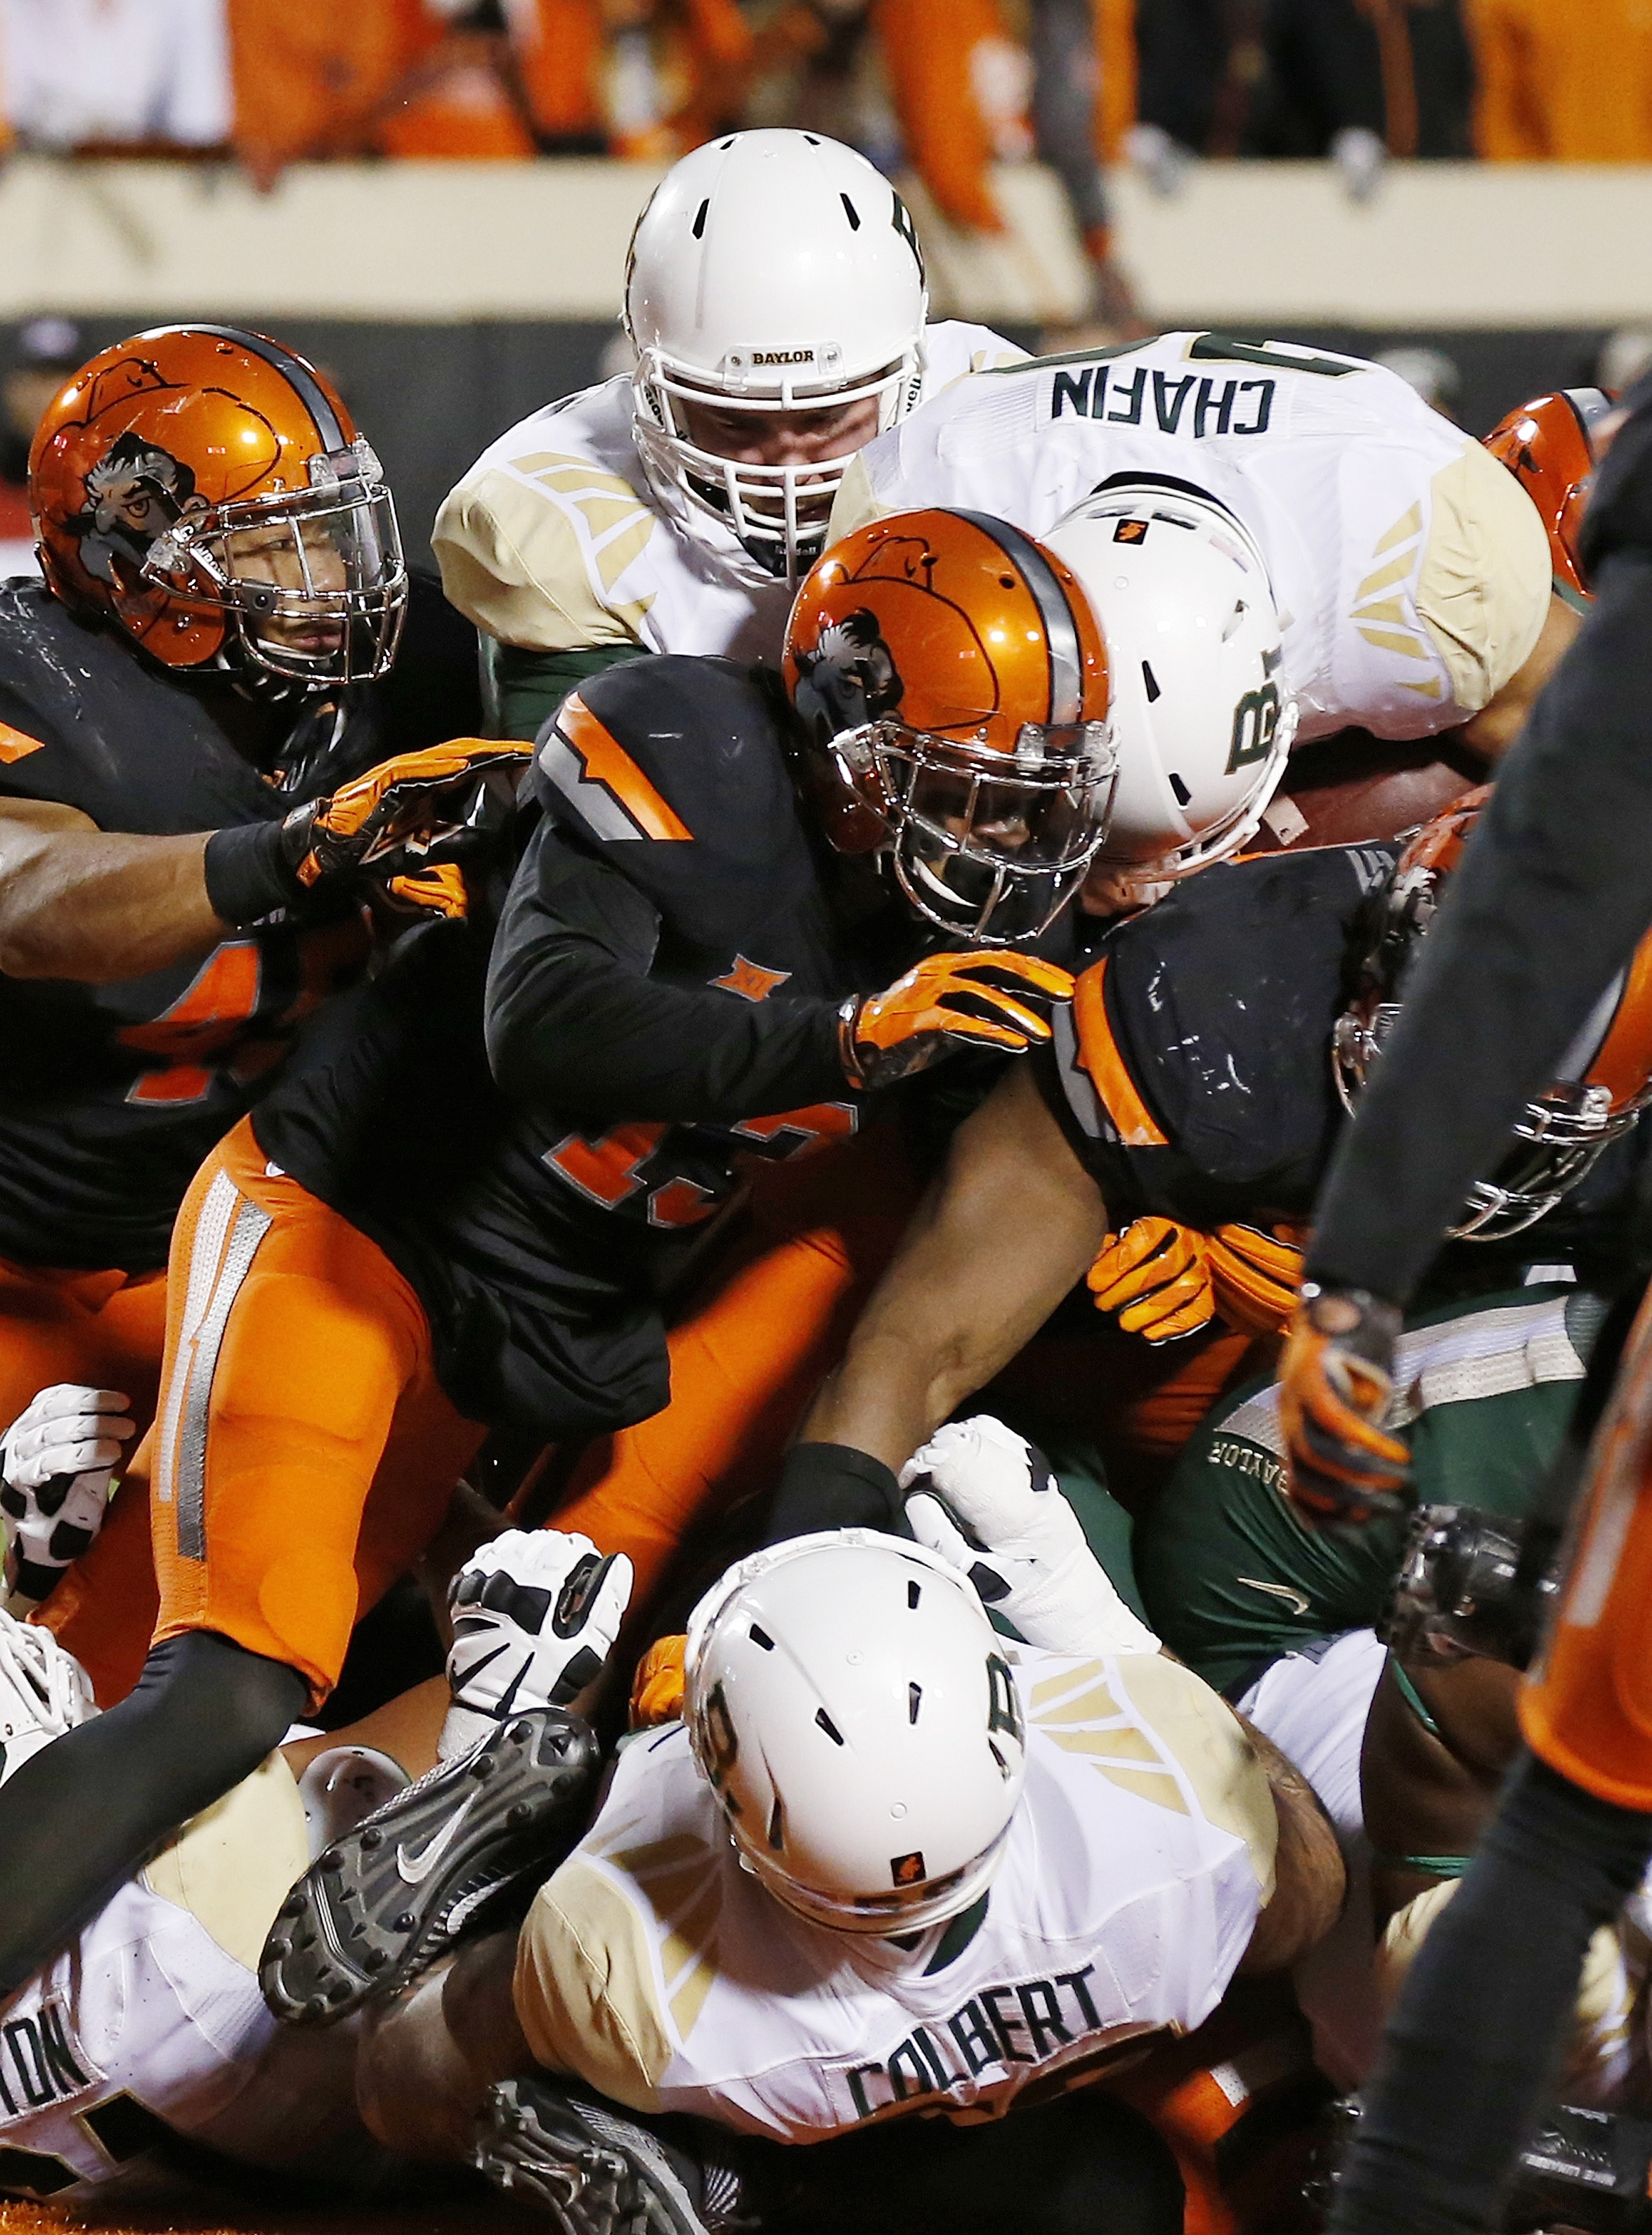 Baylor running back Devin Chafin, top, scores behind Oklahoma State safety Jordan Sterns (13) during the second quarter of an NCAA college football game in Stillwater, Okla., Saturday, Nov. 21, 2015. (AP Photo/Sue Ogrocki)